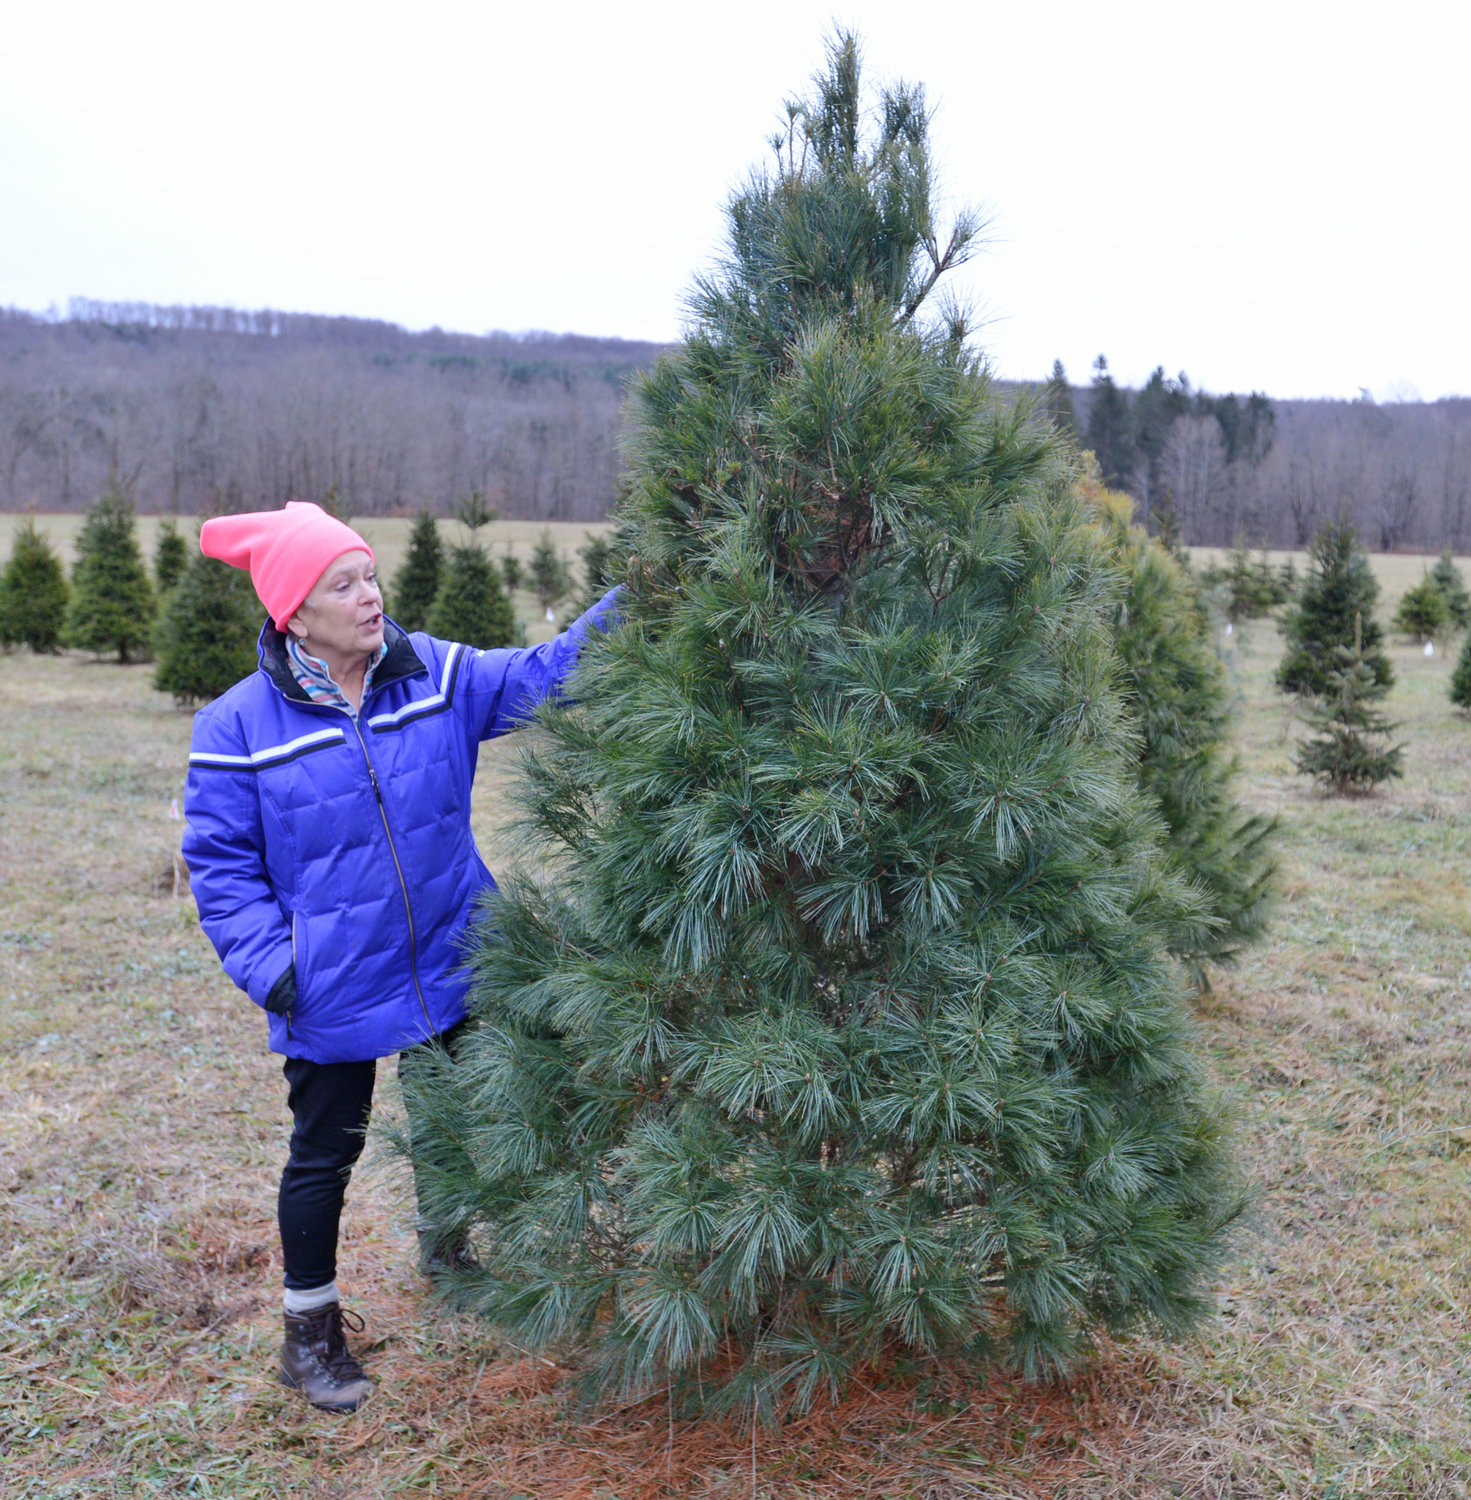 GROWER-OWNER — Kathy Iles, grower-owner of Moose Track Acres, talks about the English species of white pine she had at her Christmas Tree farm. The tree features soft long needles.